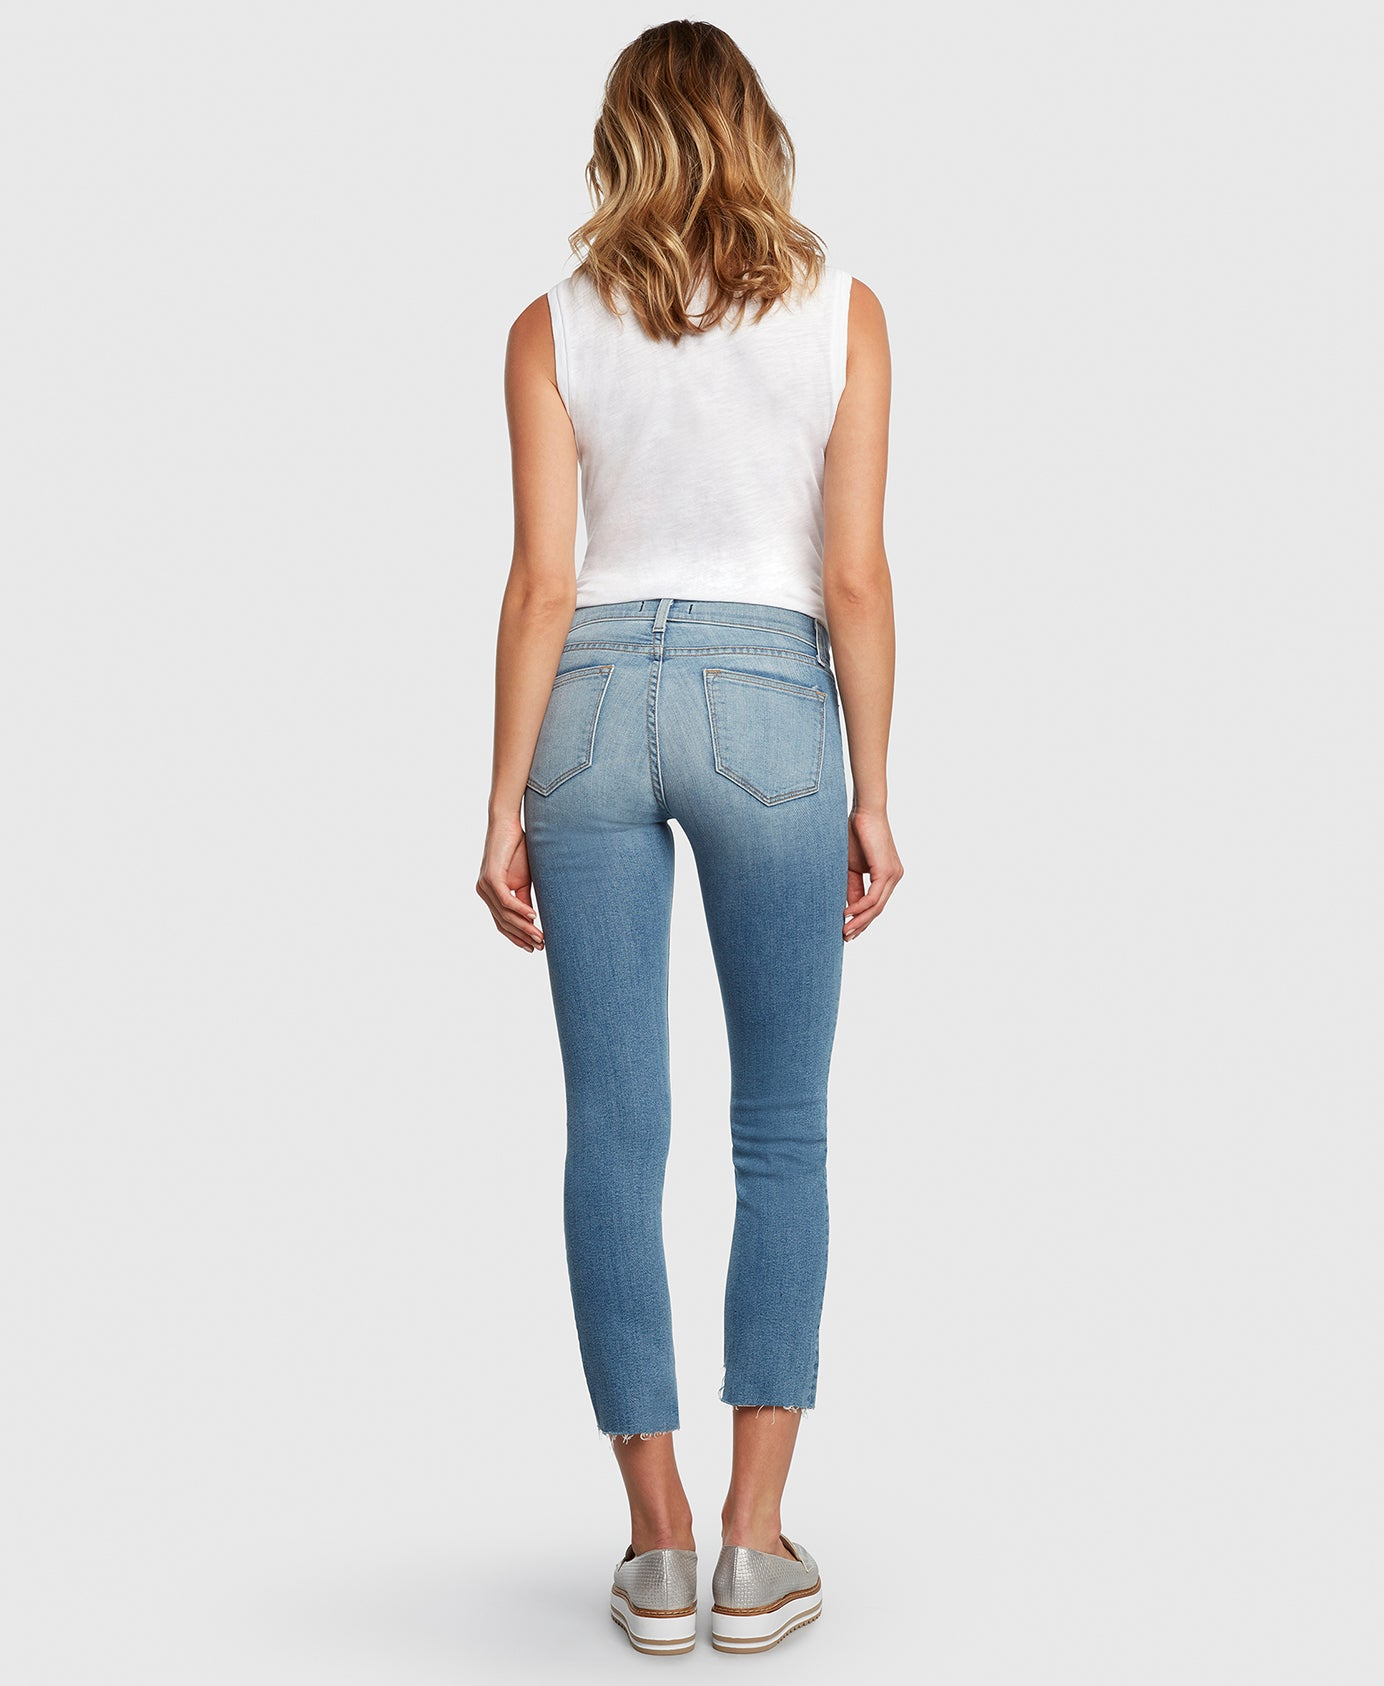 Principle OPTIMIST in Memory Lane two-tone denim back